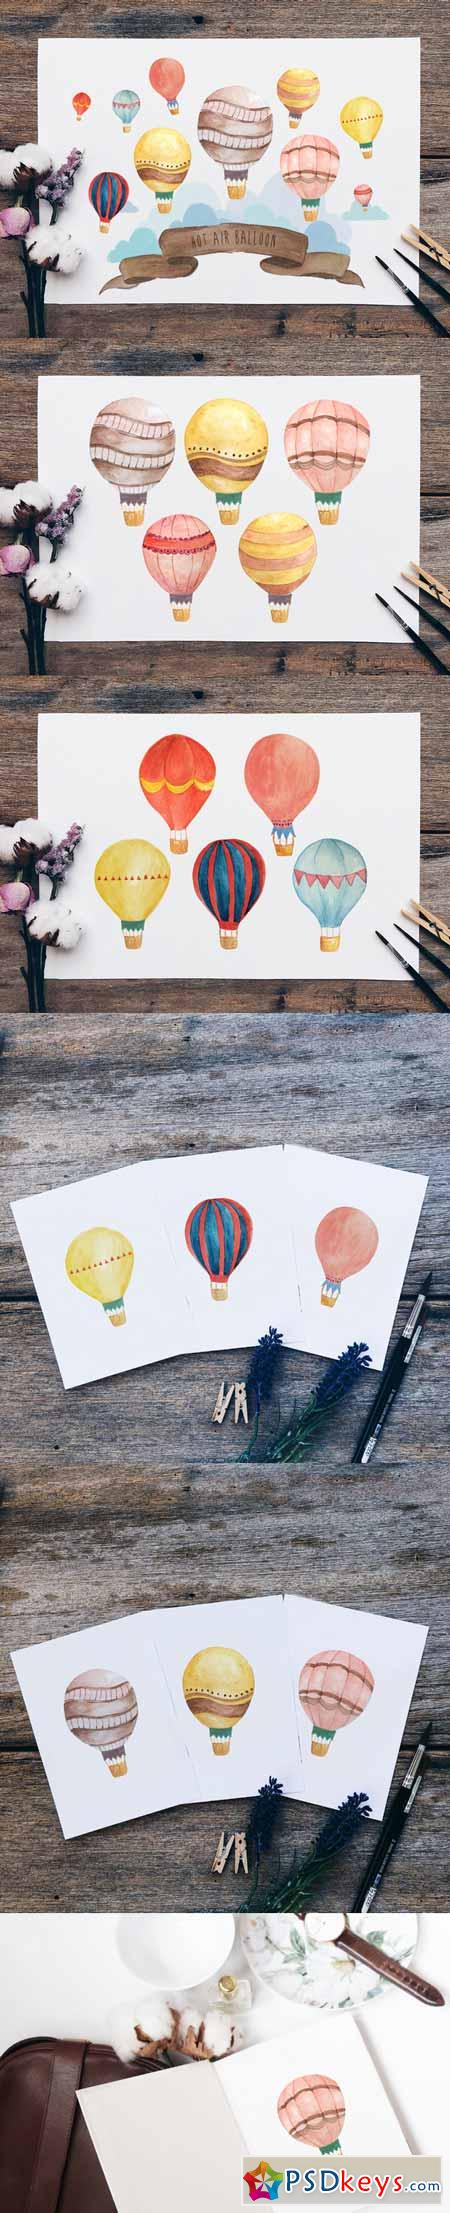 Hot Air Balloon Wall Art Bundle 581176